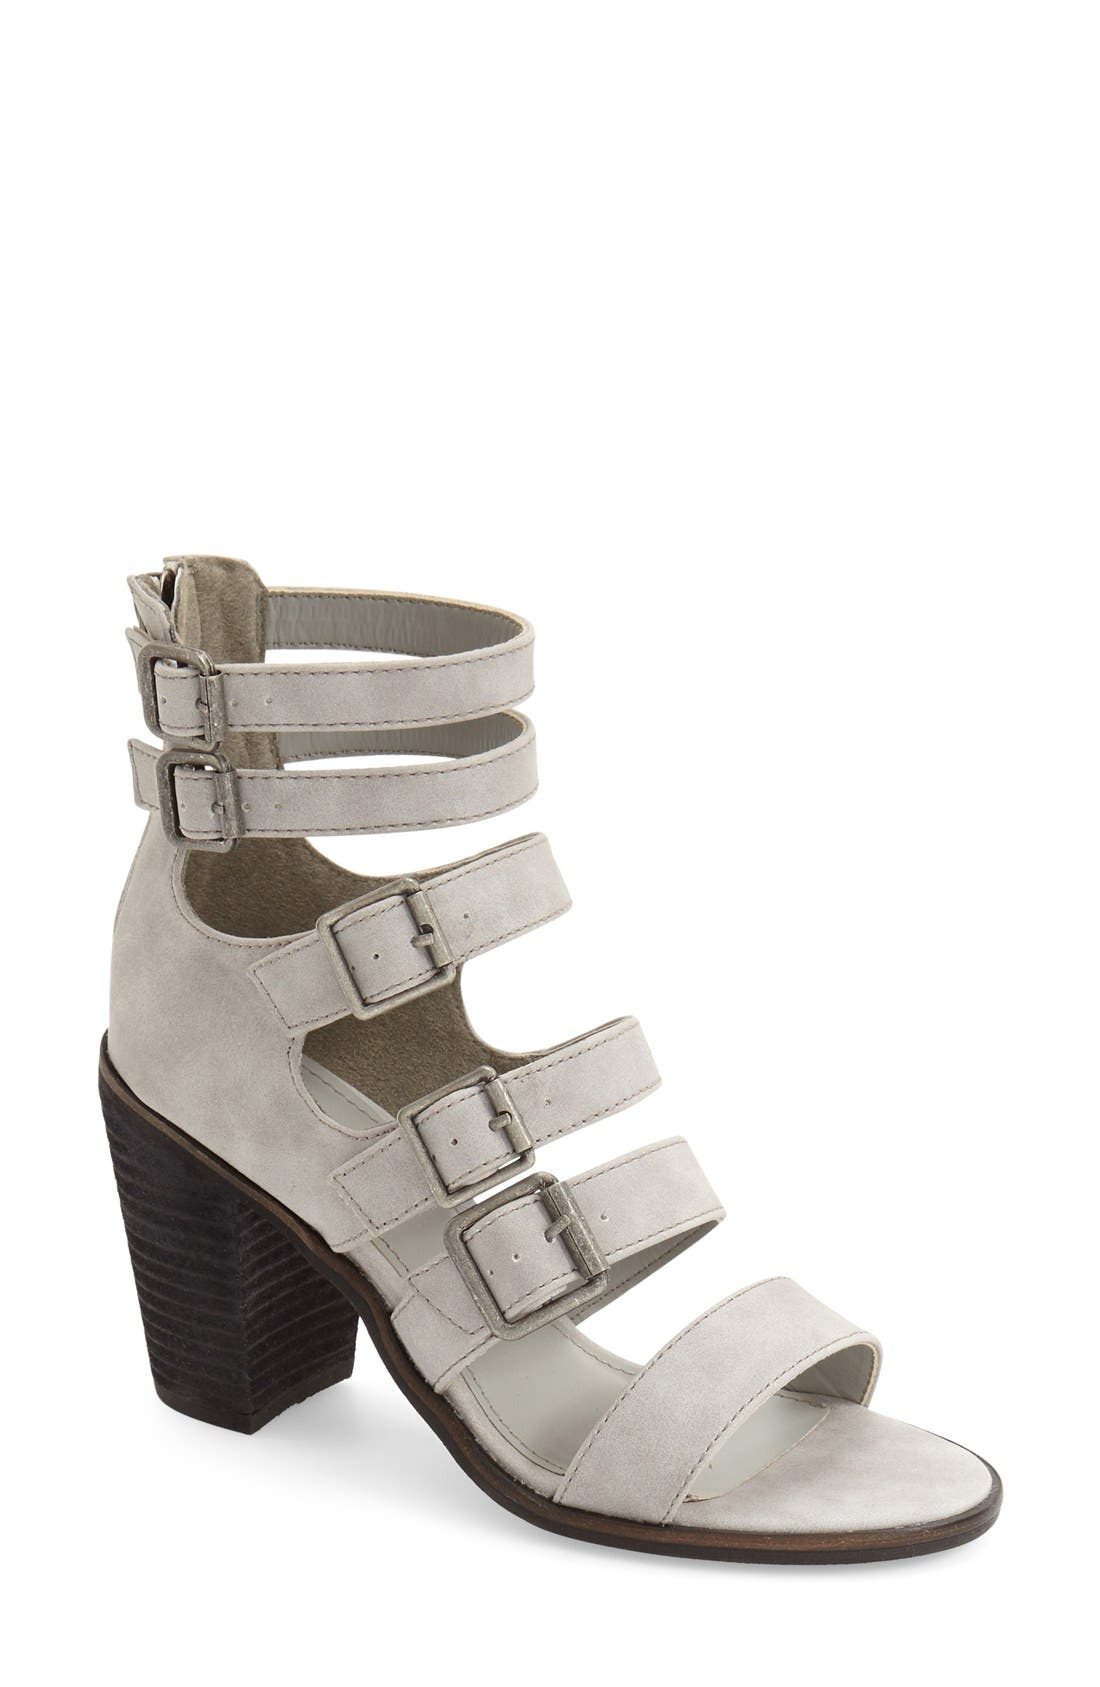 Main Image - Rebels 'Yandy' Strappy Block Heel Sandal (Women)